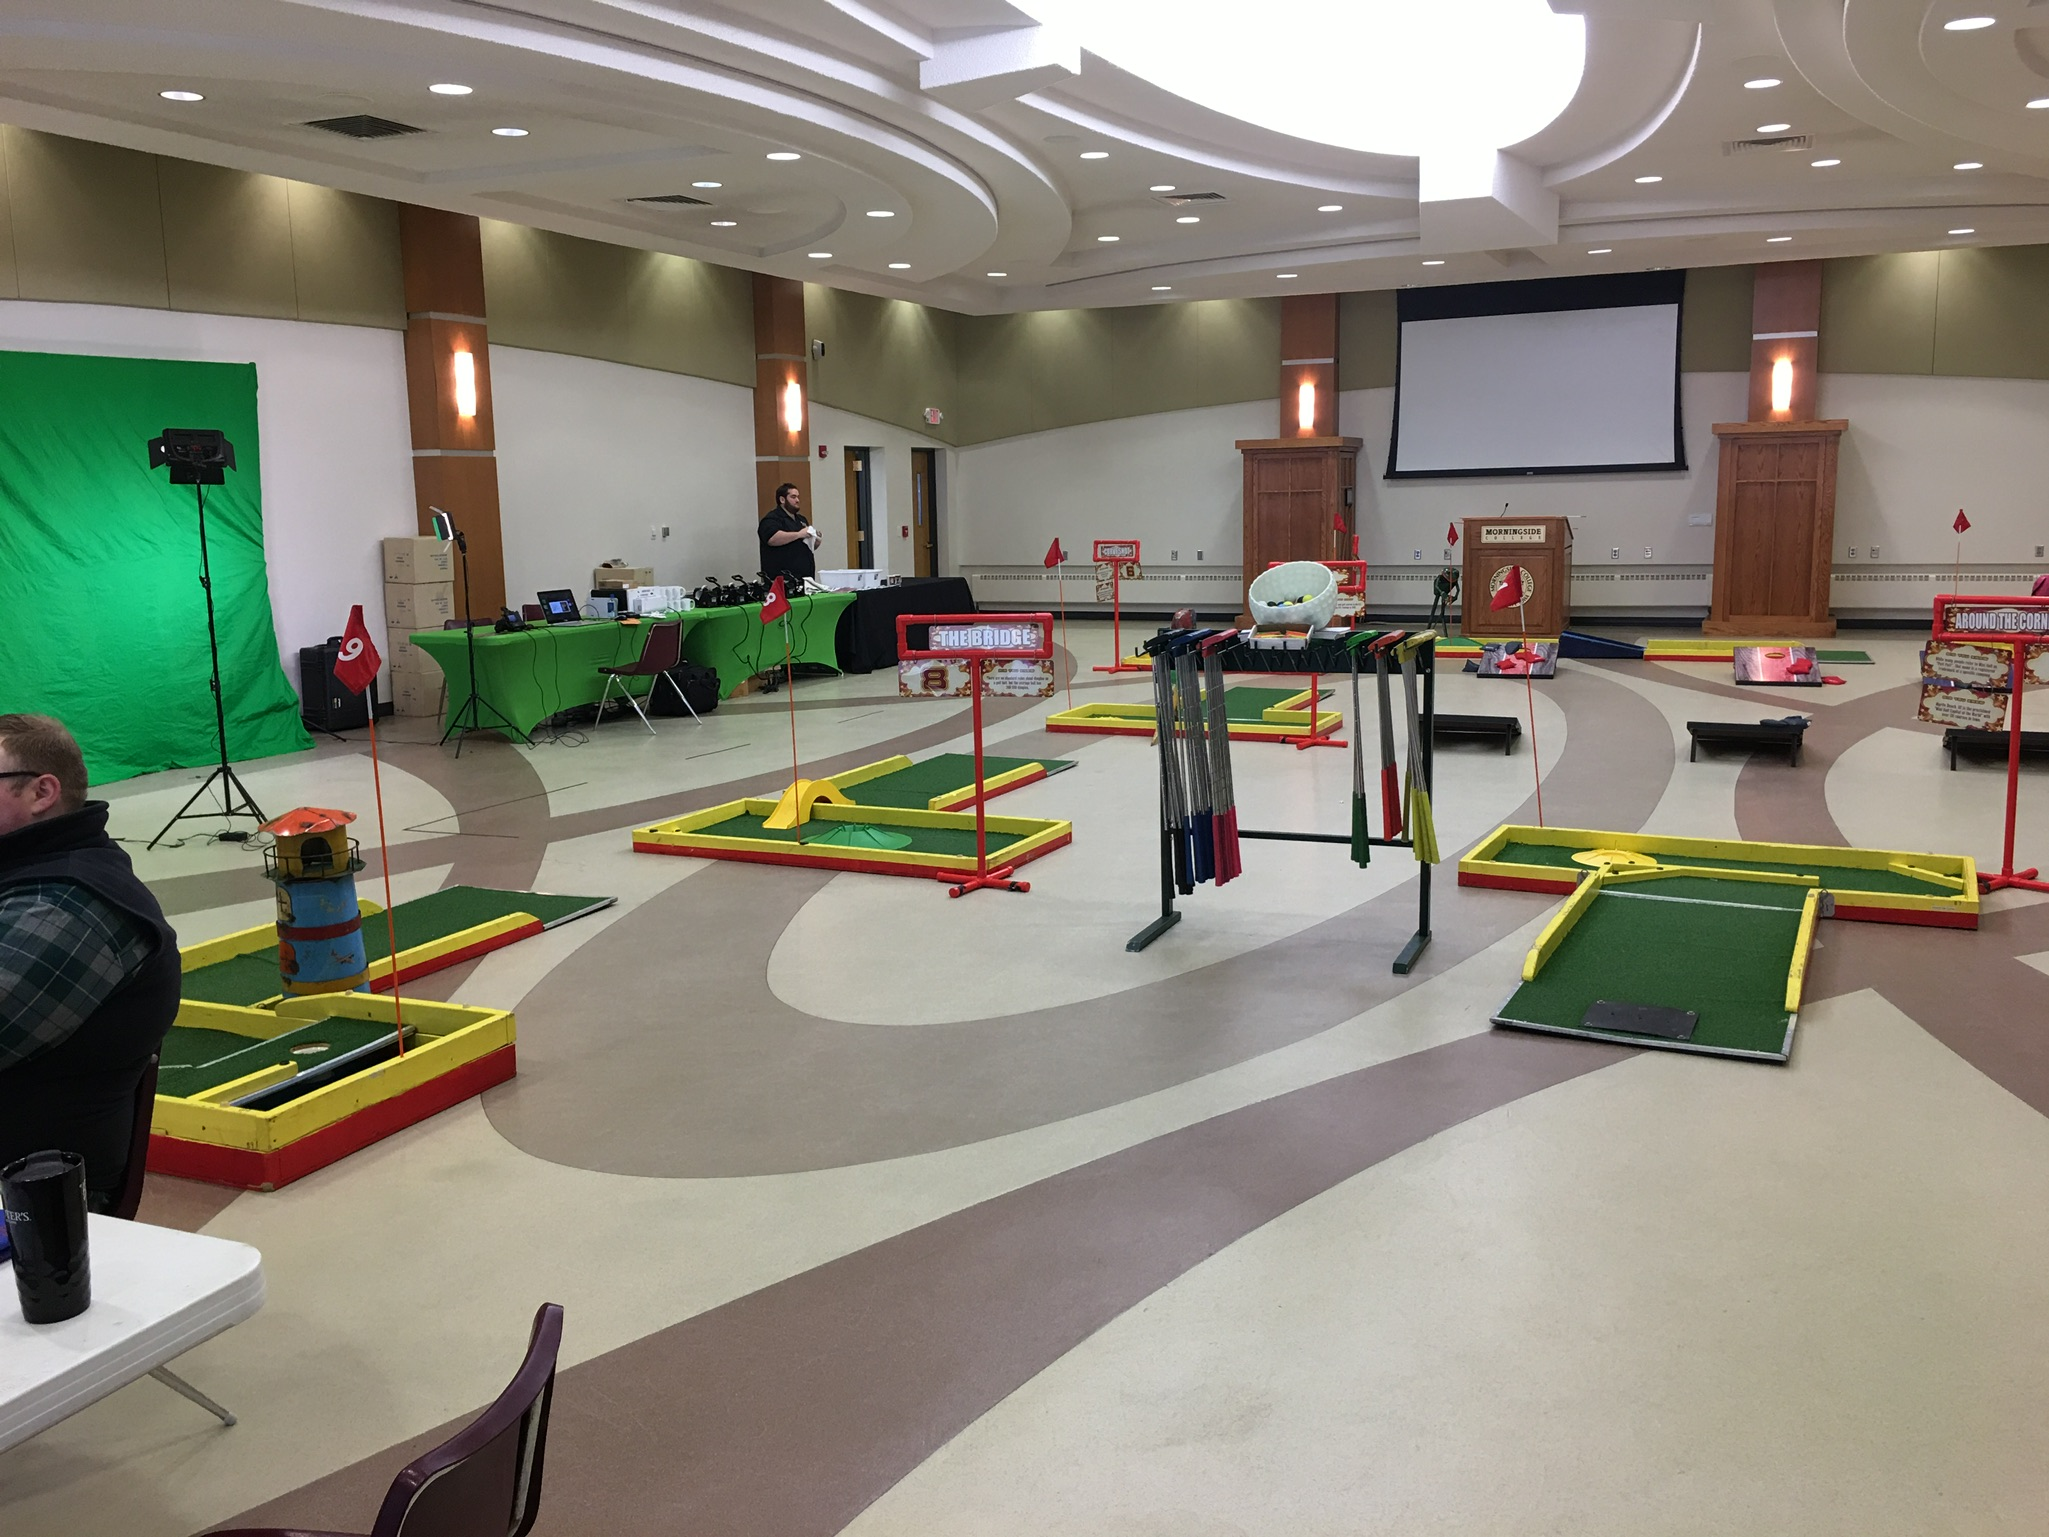 Mini Golf To Go set up and ready for students at Morningside College